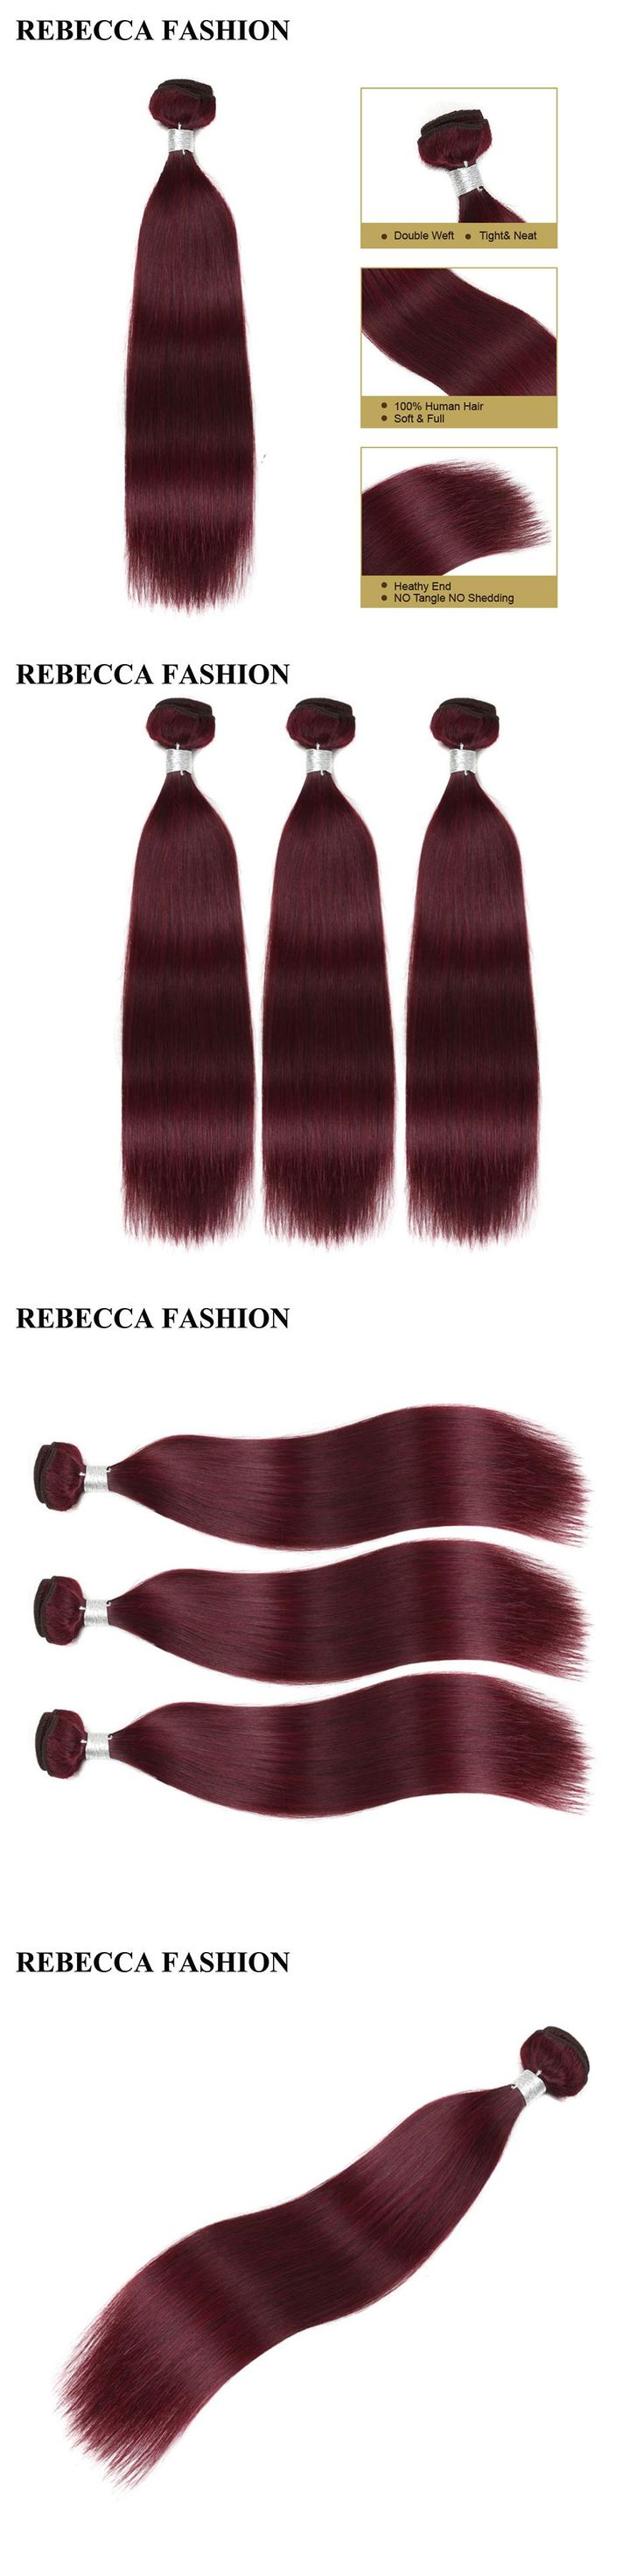 Rebecca Remy Human Hair Bundles Wine Red Hair Weave 3 Bundles Brazilian Straight Hair 3 Bundles 99j Salon Hair Extensions